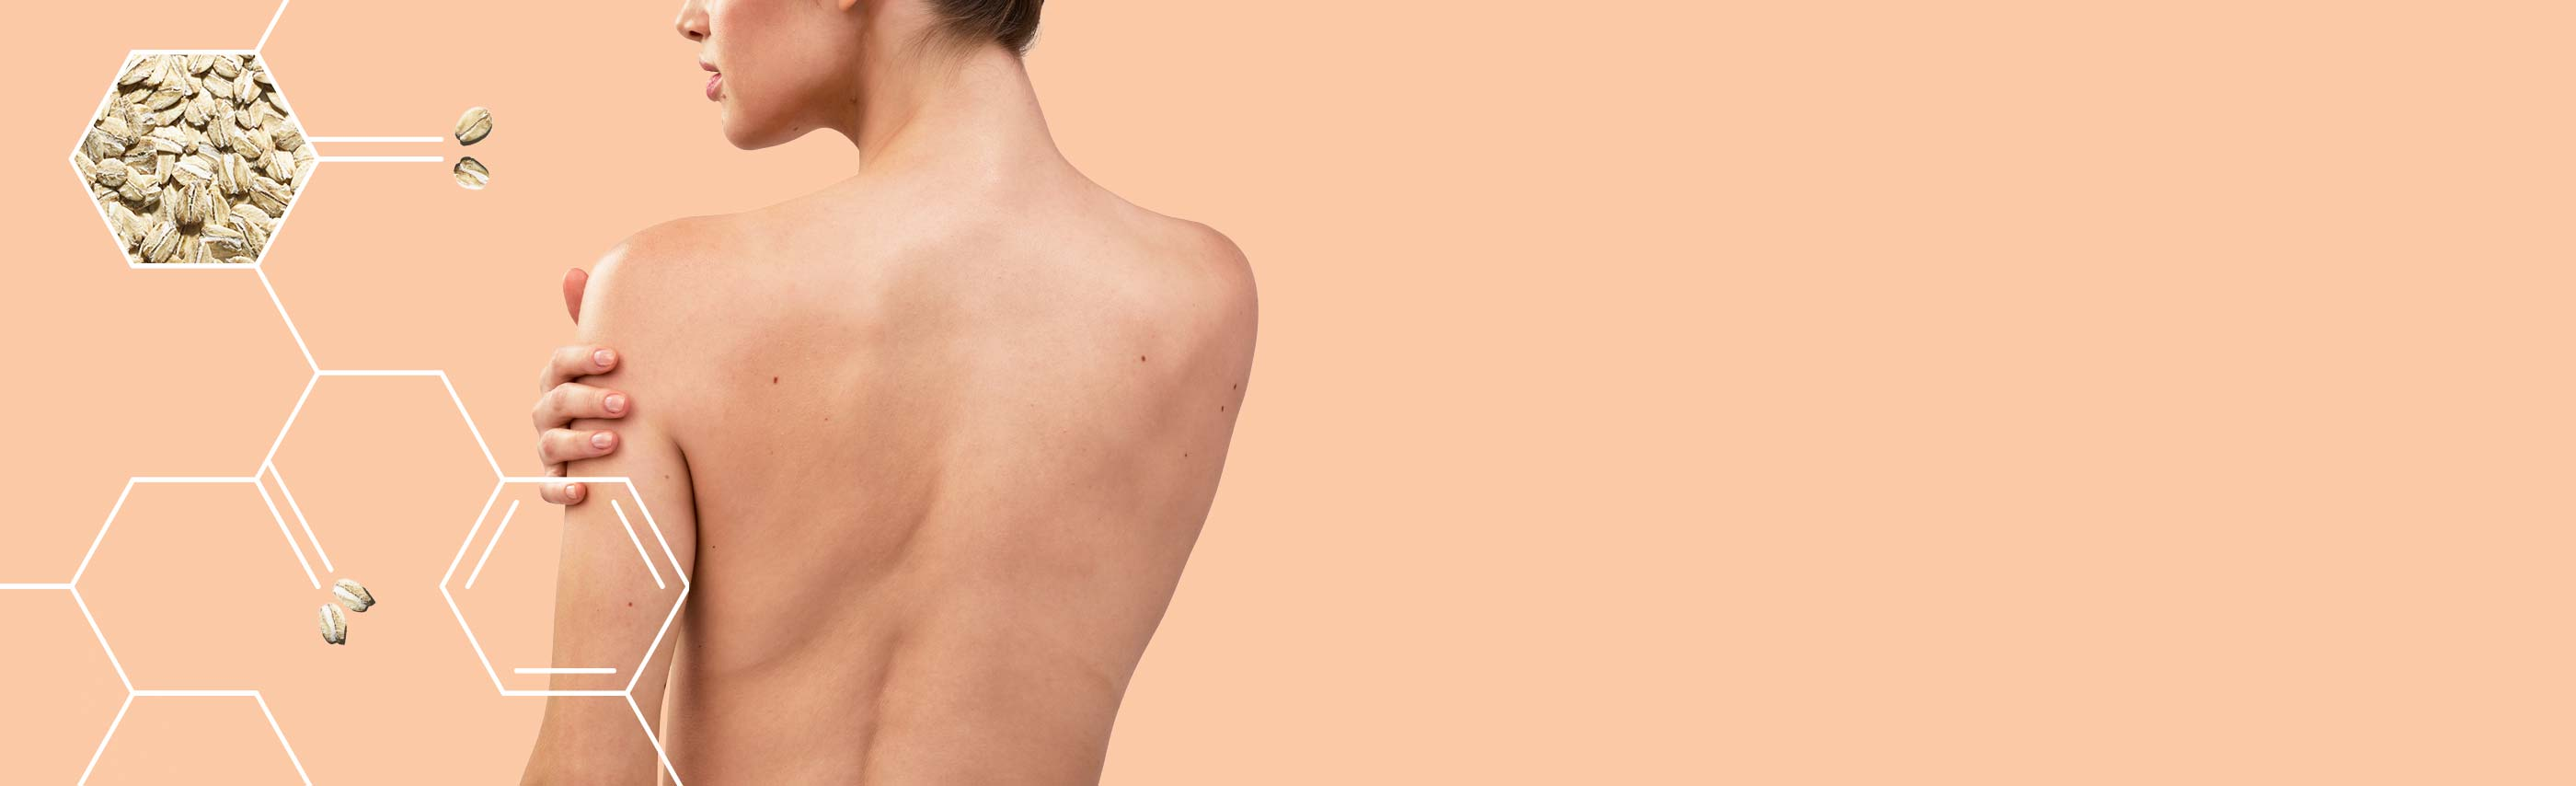 sensitive skin banner image